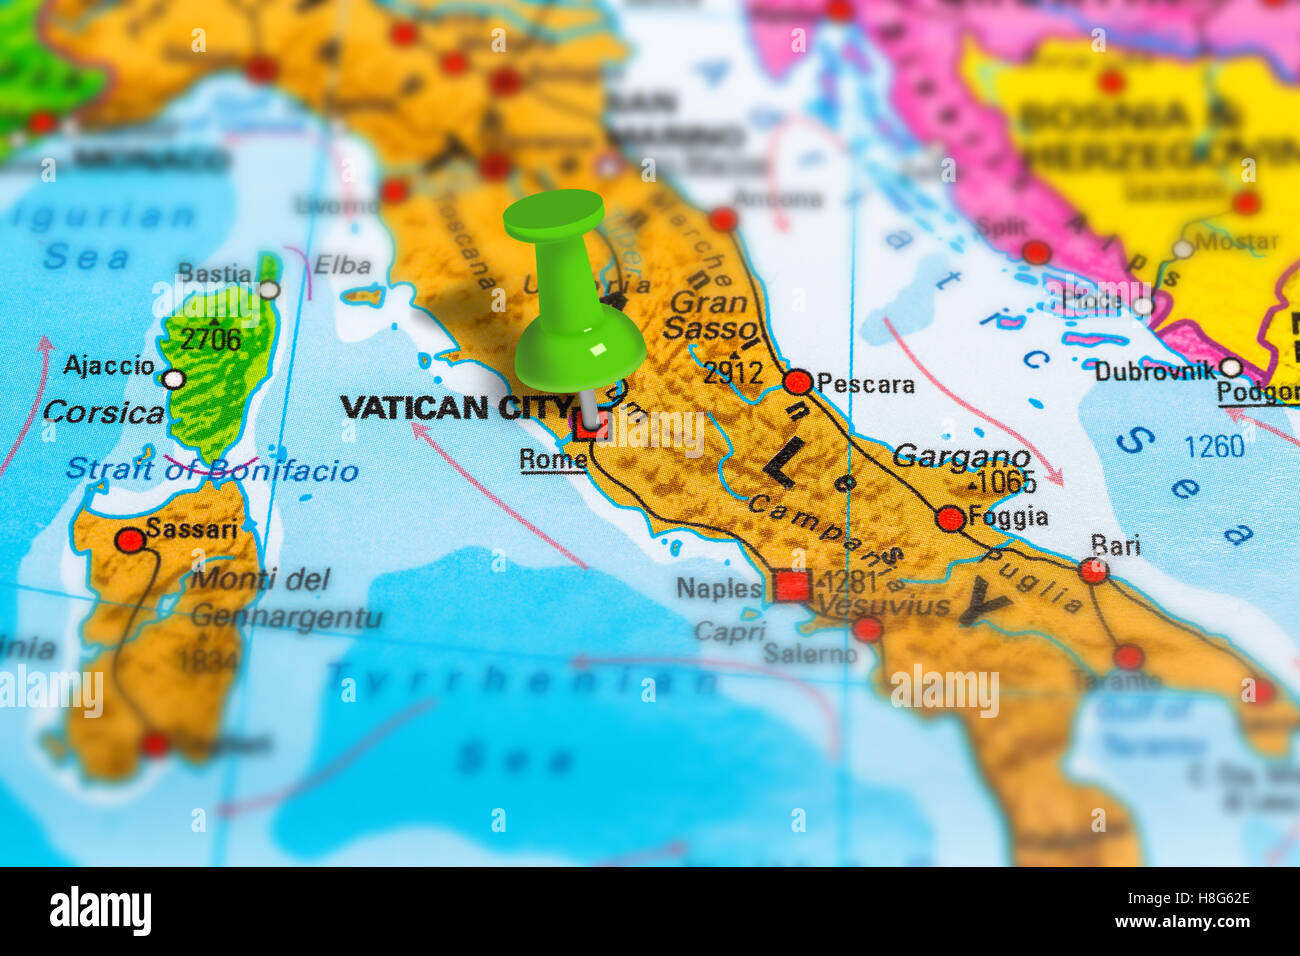 Rome Italy map Stock Photo Royalty Free Image 125745830 Alamy